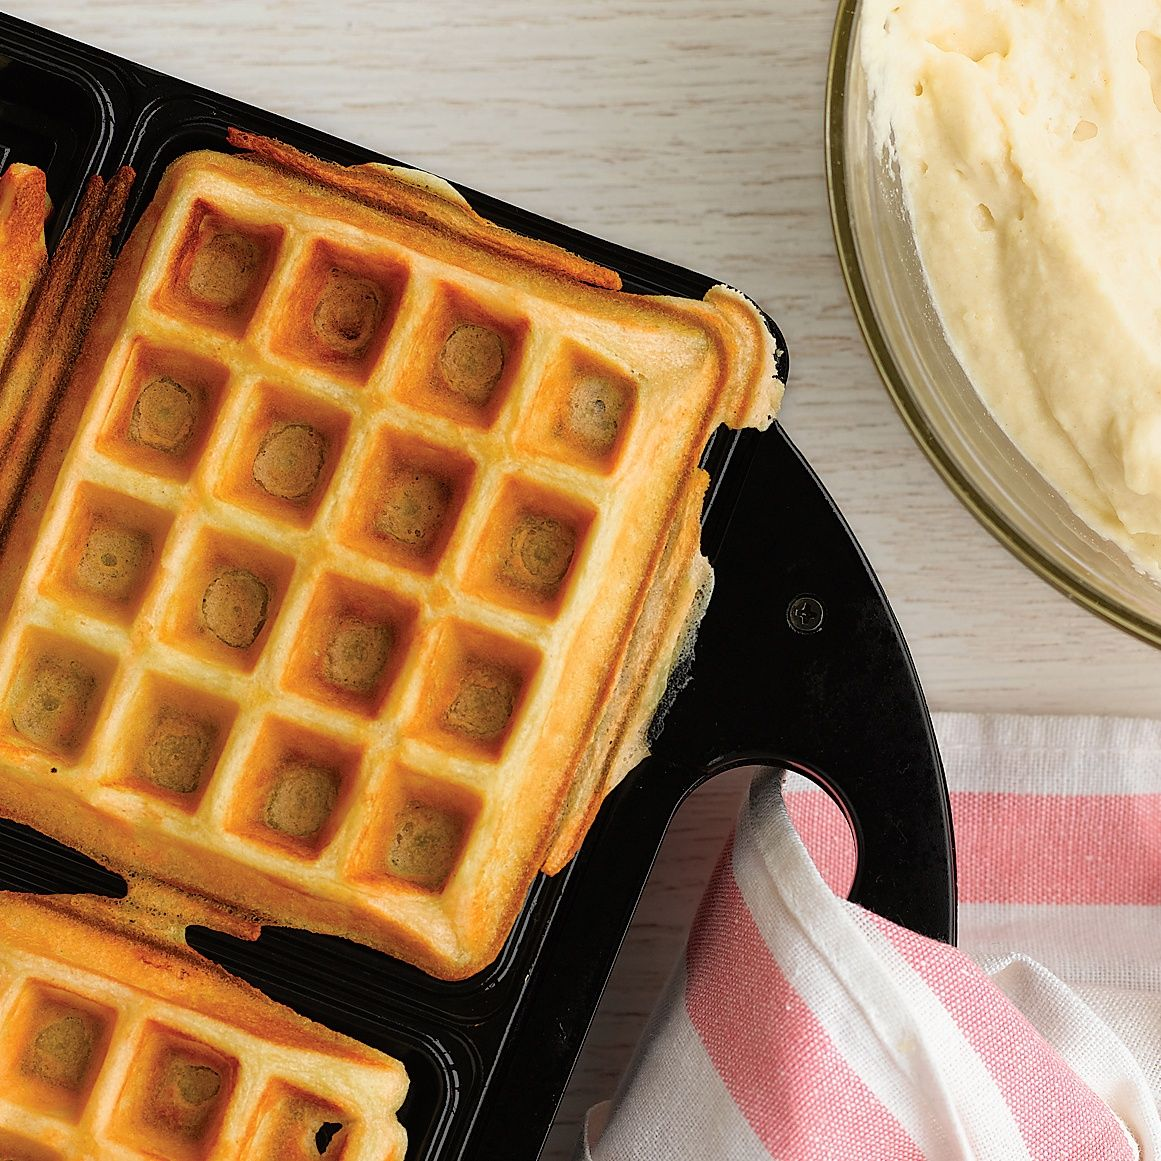 Buttermilk Waffles Recipe Buttermilk Waffles Waffle Recipes Savory Waffles